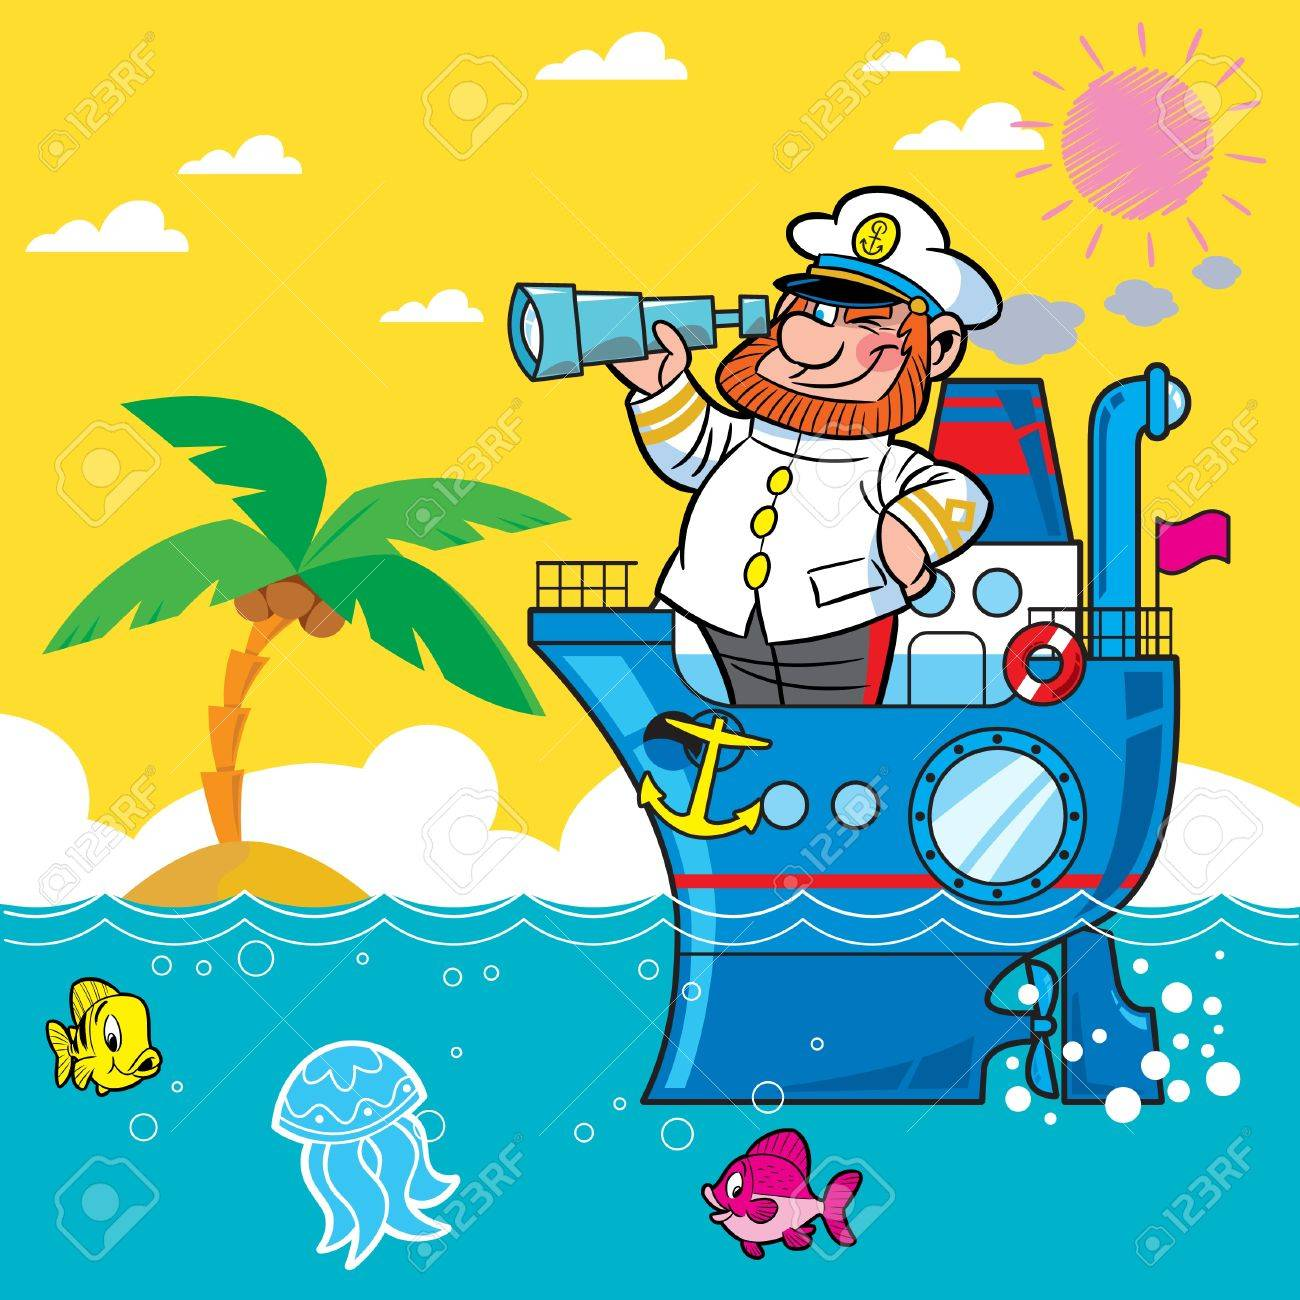 Cartoon captain on a ship sailing on the sea .. He looks through his binoculars. Against the backdrop of beach and palm trees. Stock Vector - 11376397